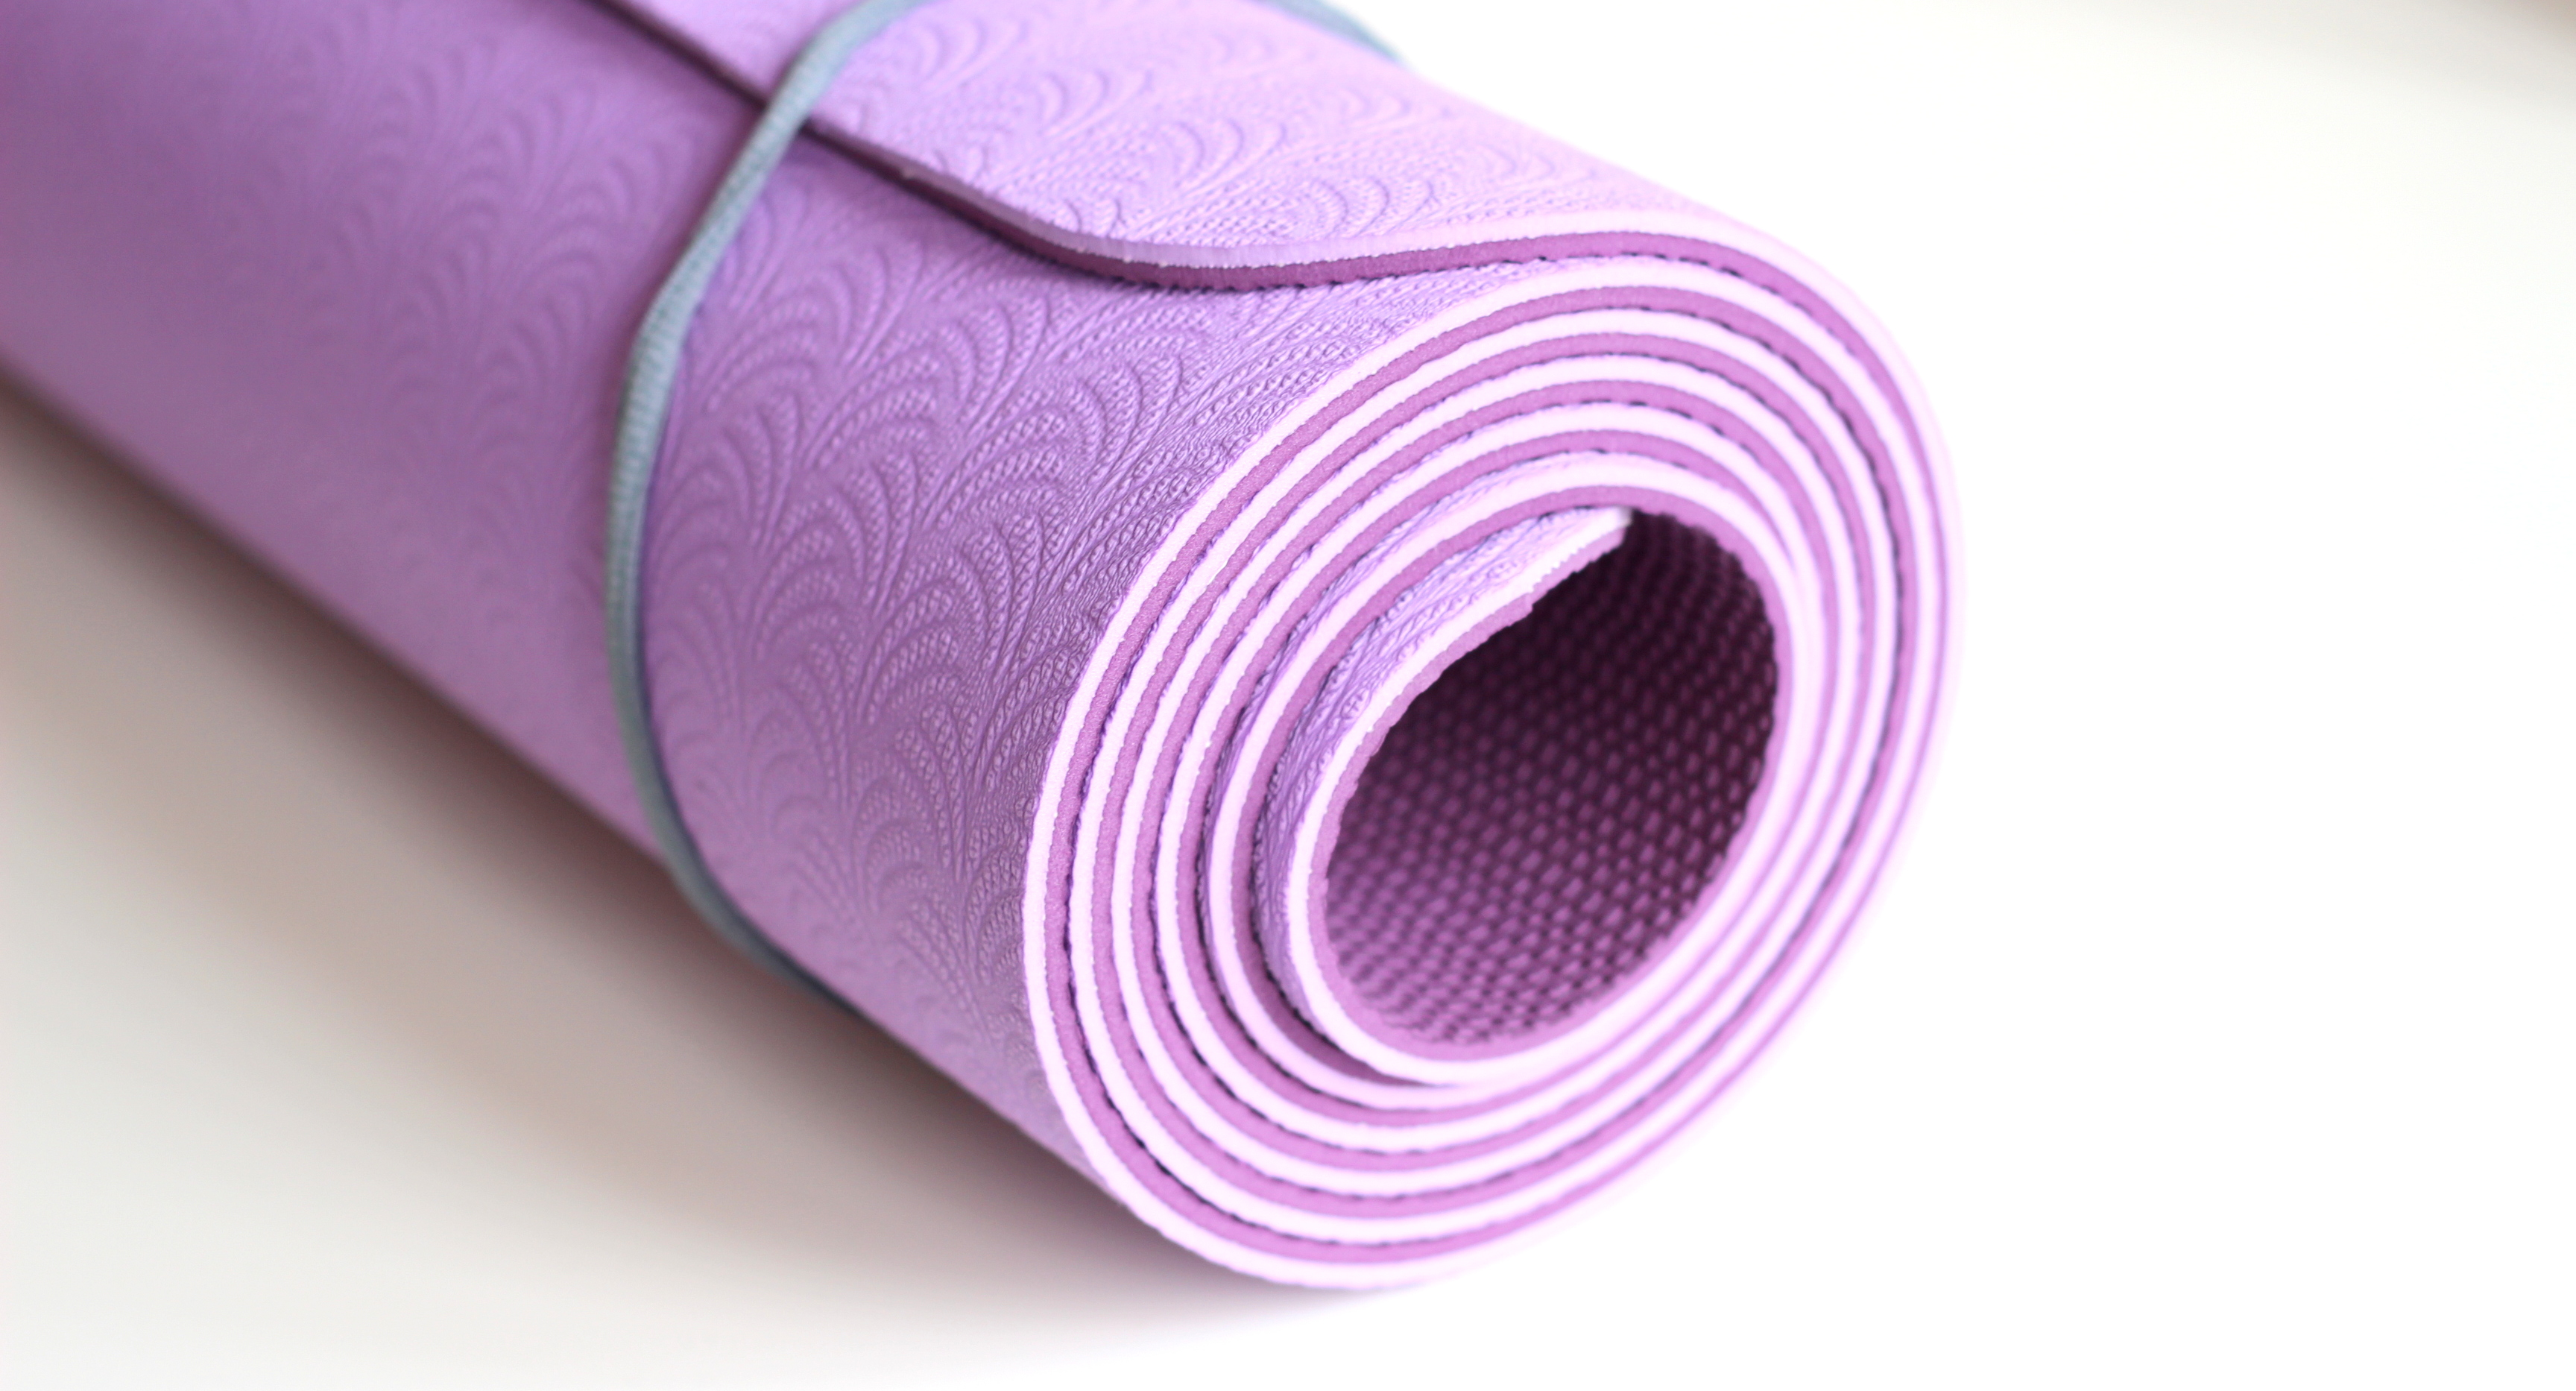 yogamat-review (4)